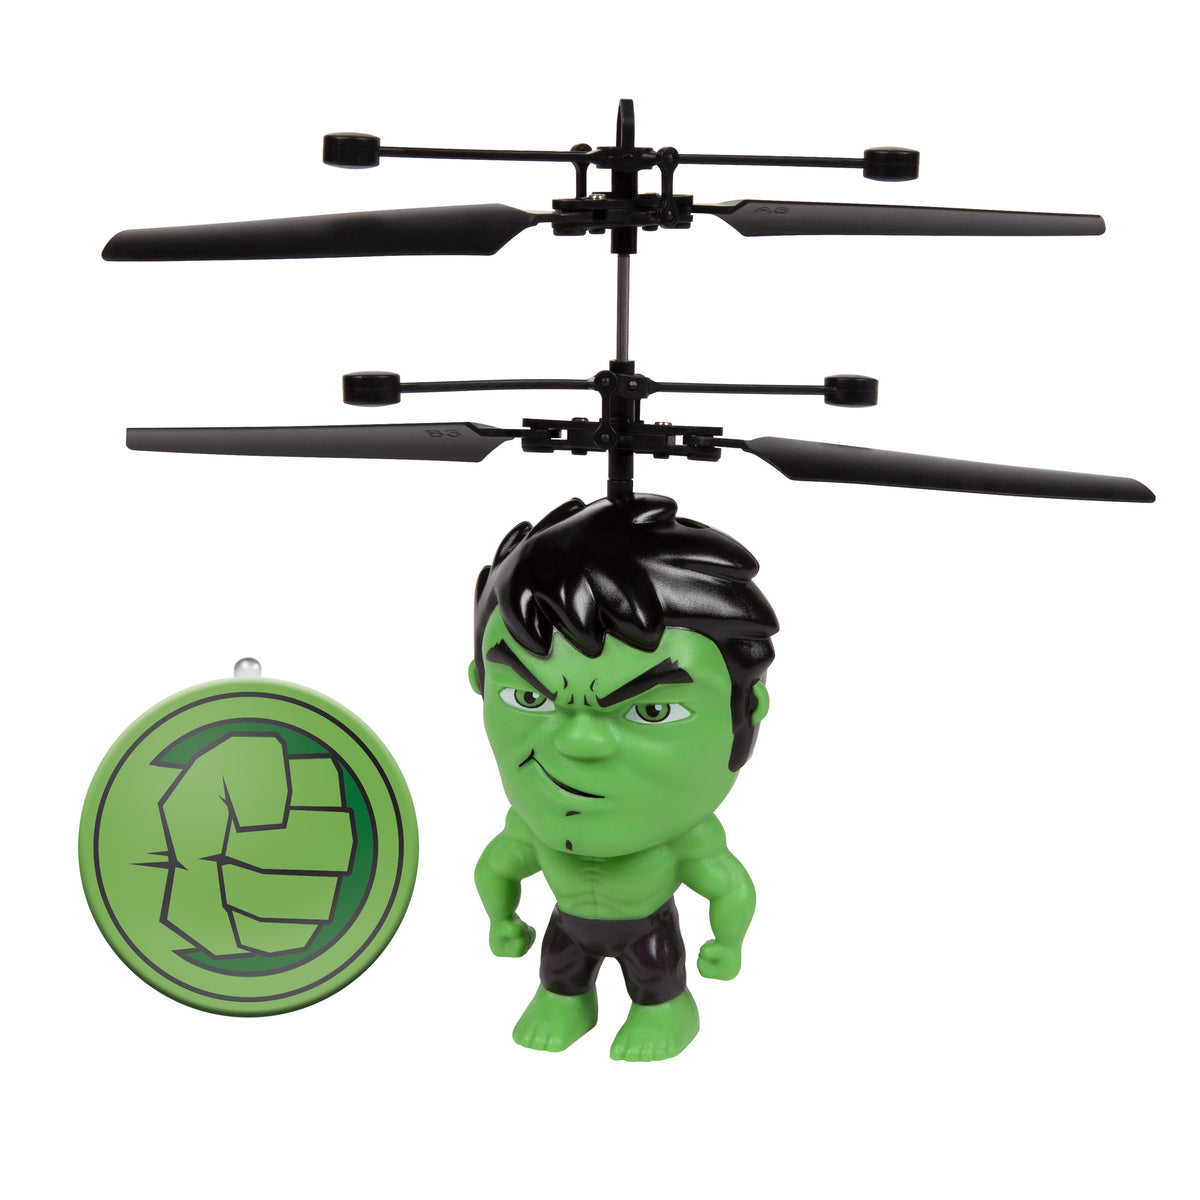 Marvel 3.5 Inch Hulk Flying Figure IR Helicopter